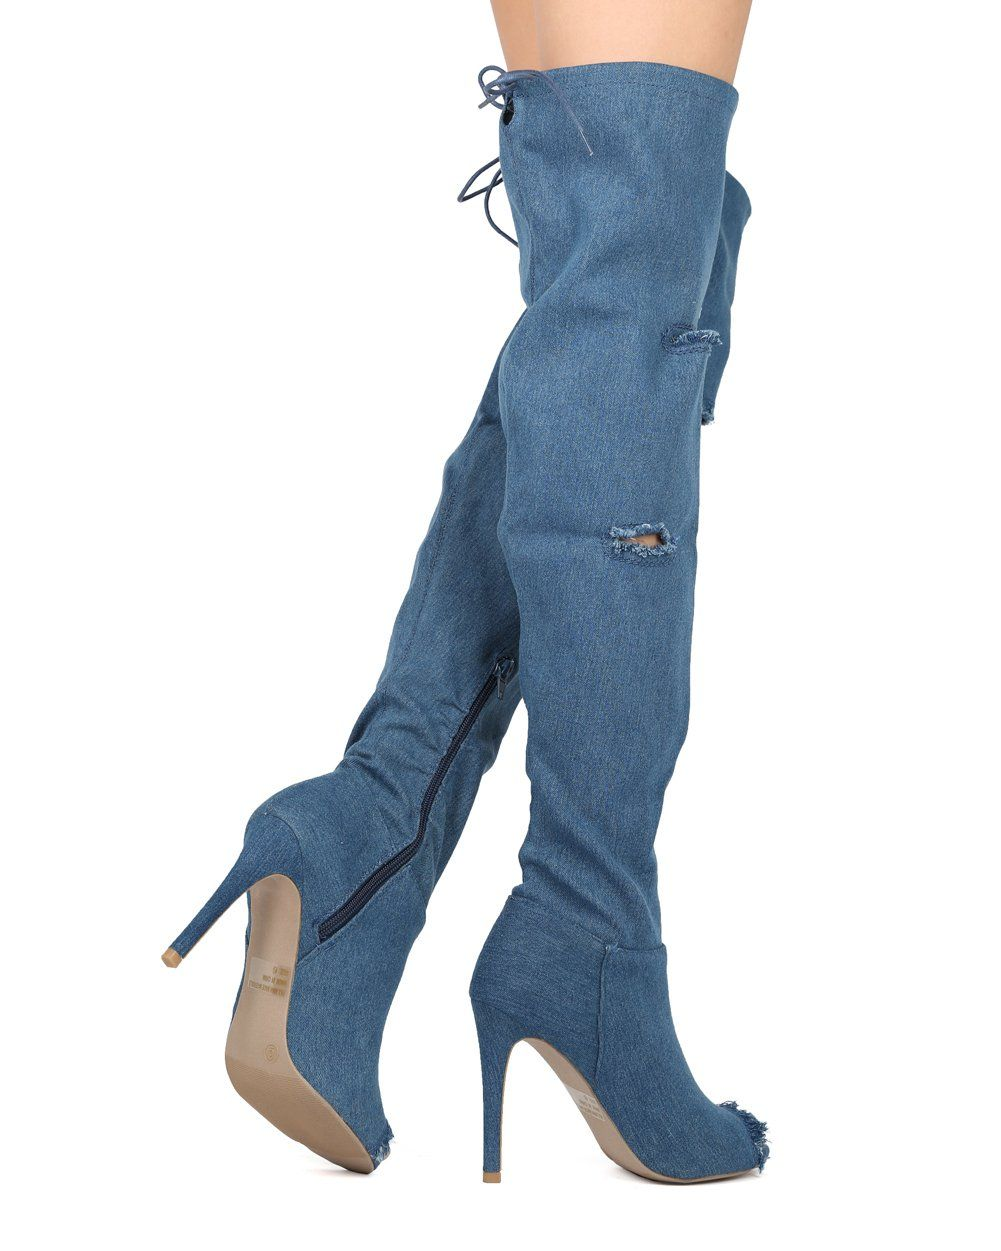 81b1014326e Women Frayed Denim Peep Toe Over The Knee Stiletto Boot HG40 by Wild Diva  Collection Denim Size  8.5    Check out this great product.